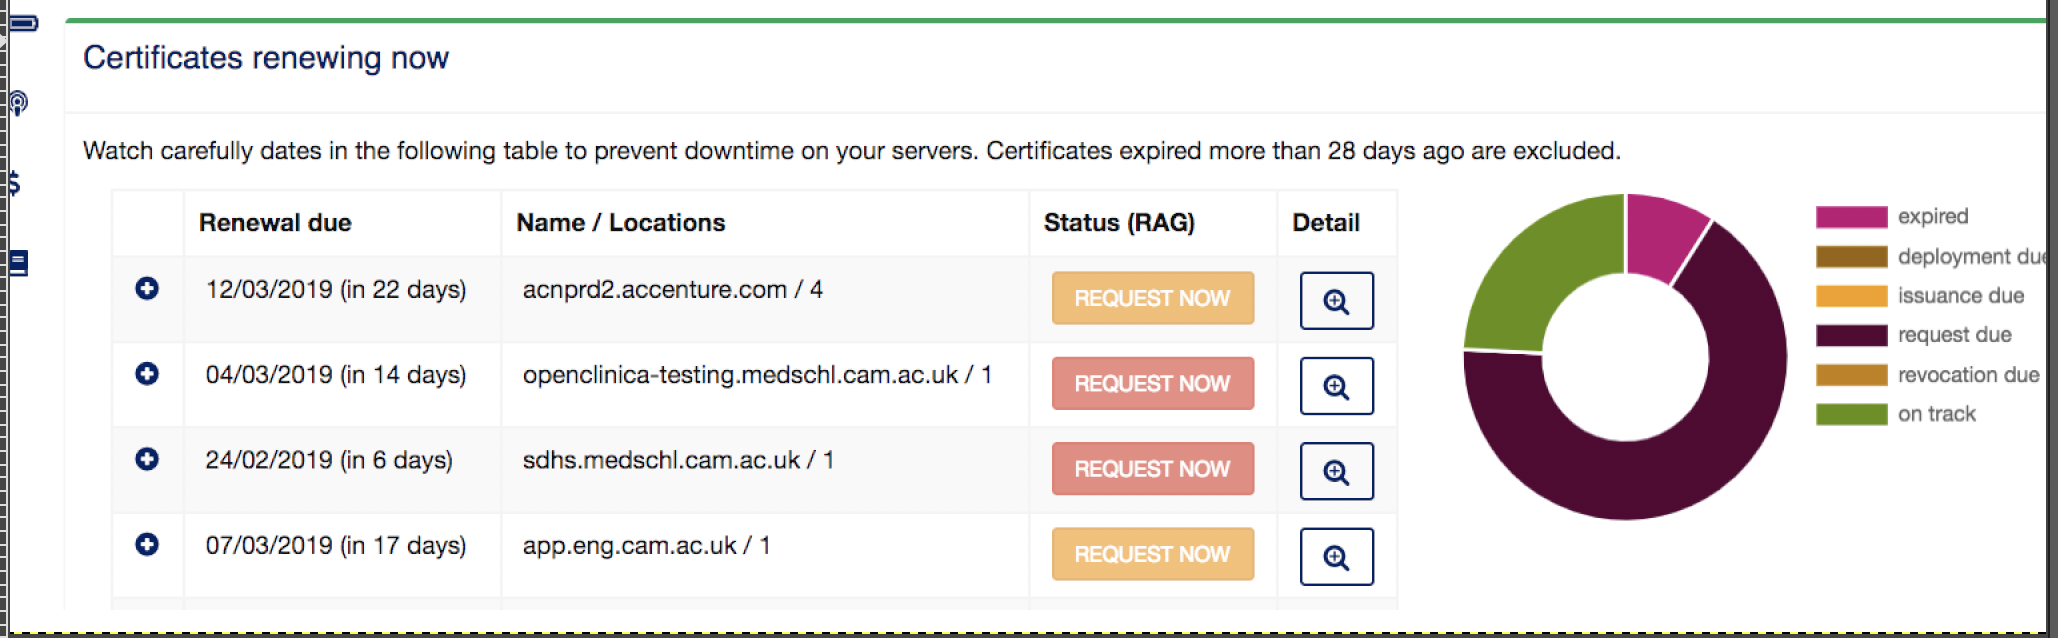 A simple view showing your risk in the next 7 days is the first step for effective certificate management.